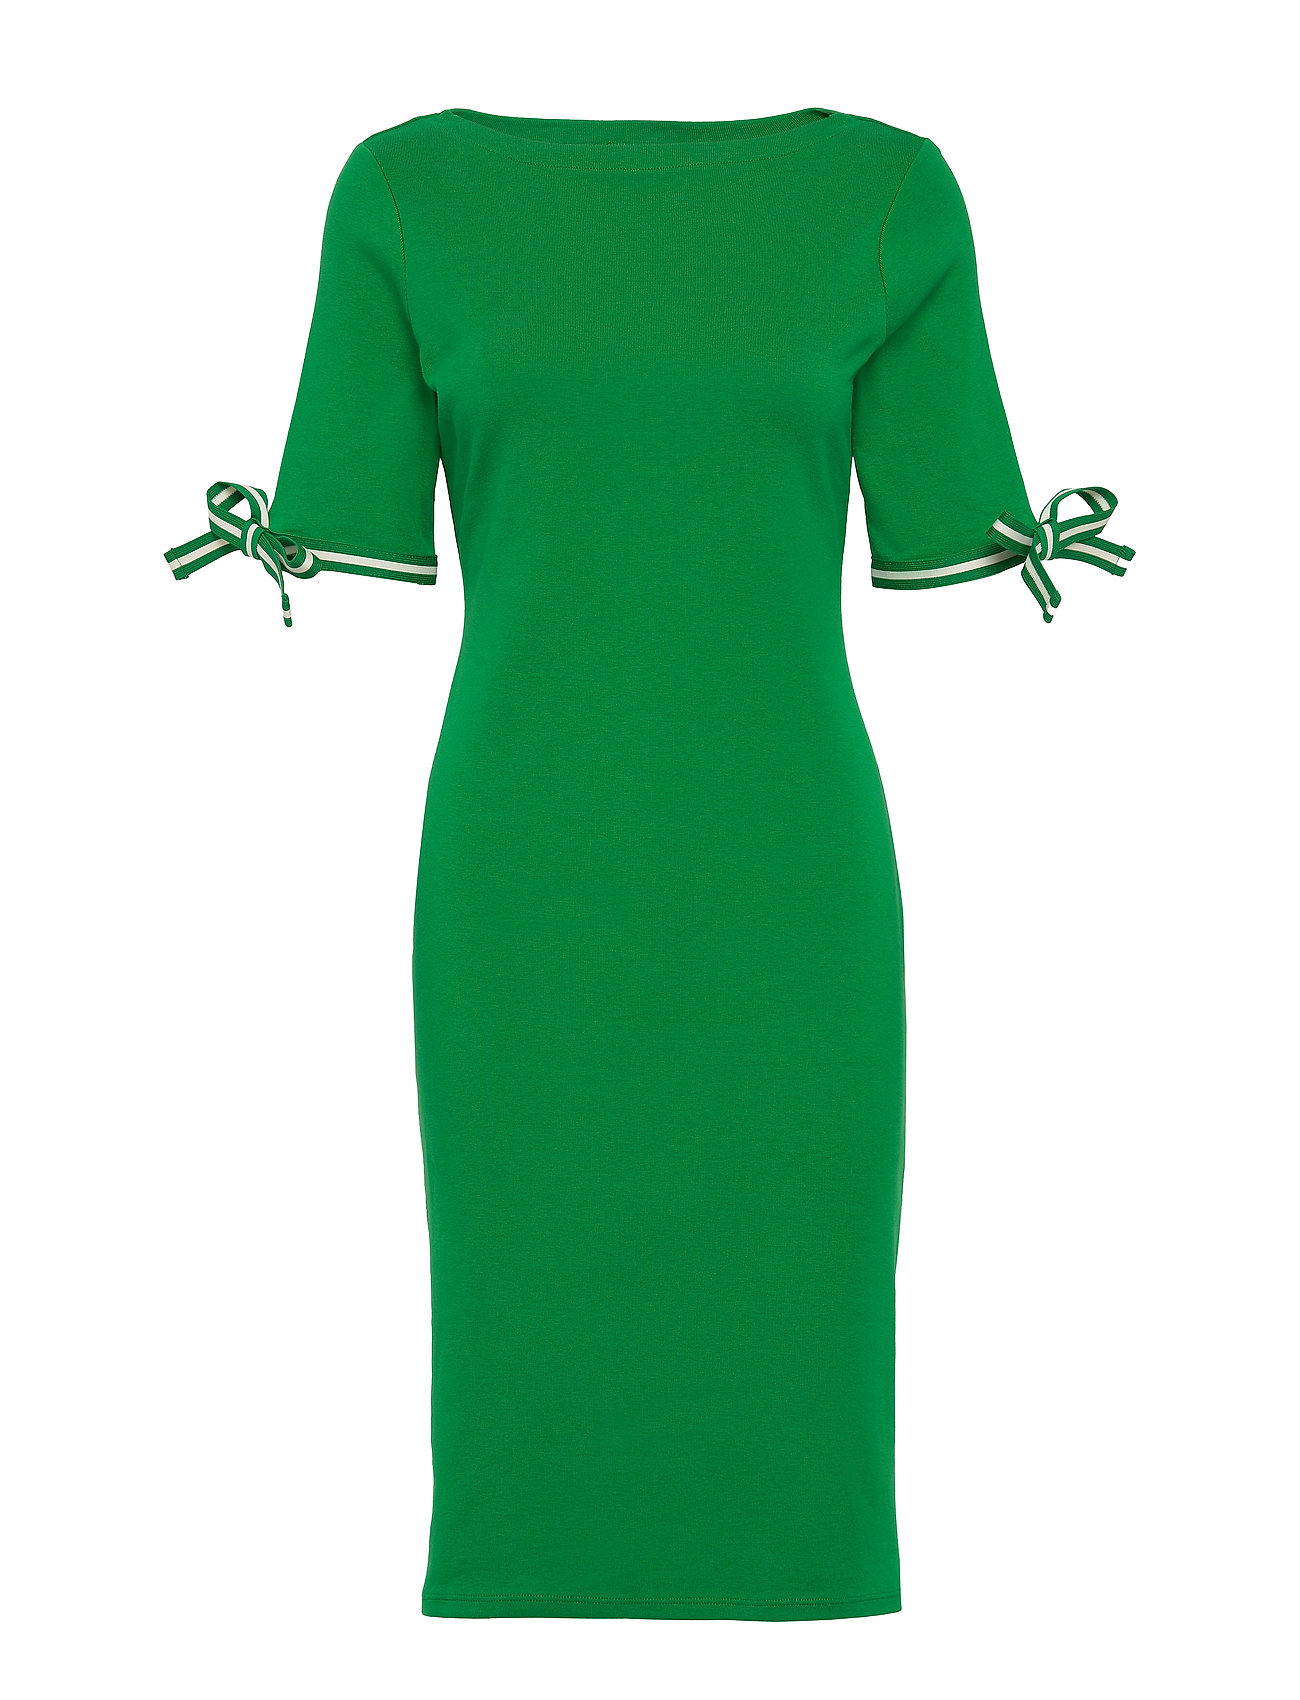 Lauren Ralph Lauren Cotton Boatneck Dress - HEDGE GREEN